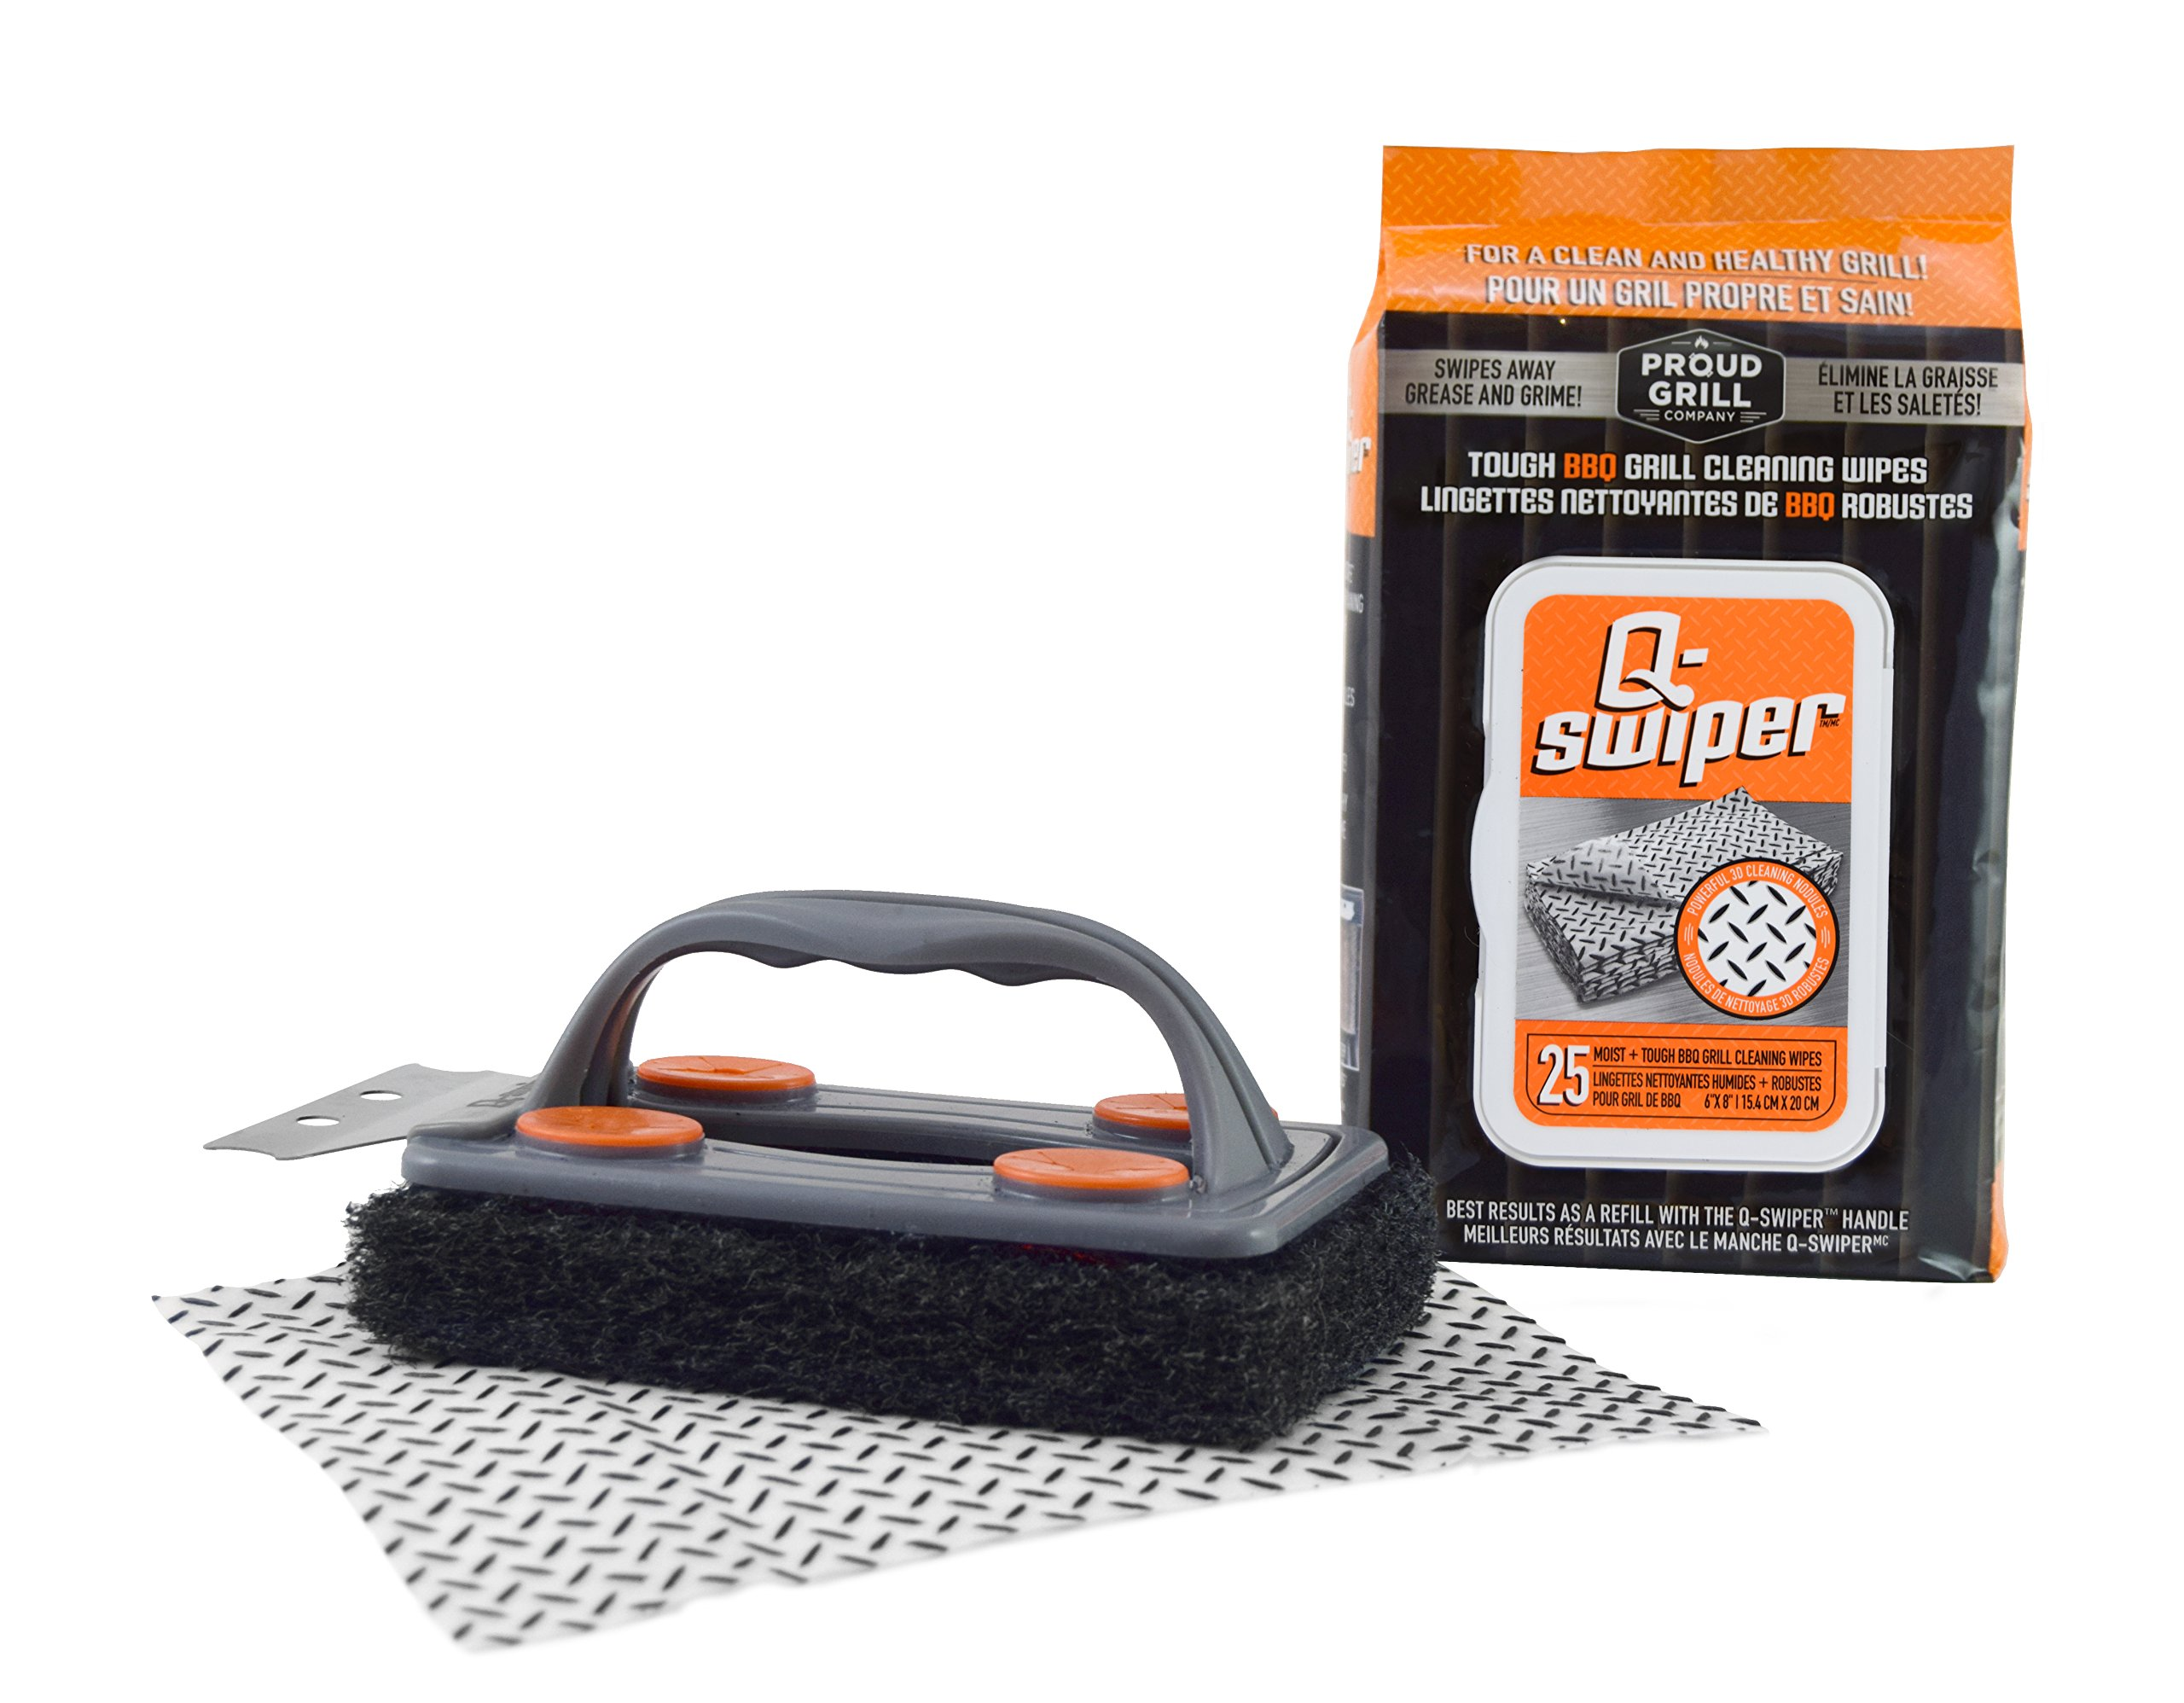 Q-Swiper BBQ Grill Cleaner Set - 1 Grill Brush with Scraper and 25 BBQ Grill Cleaning Wipes | Bristle Free & Wire Free | Safe Way to Remove Grease and Grime for A Clean and Healthy Grill! by Proud Grill Company